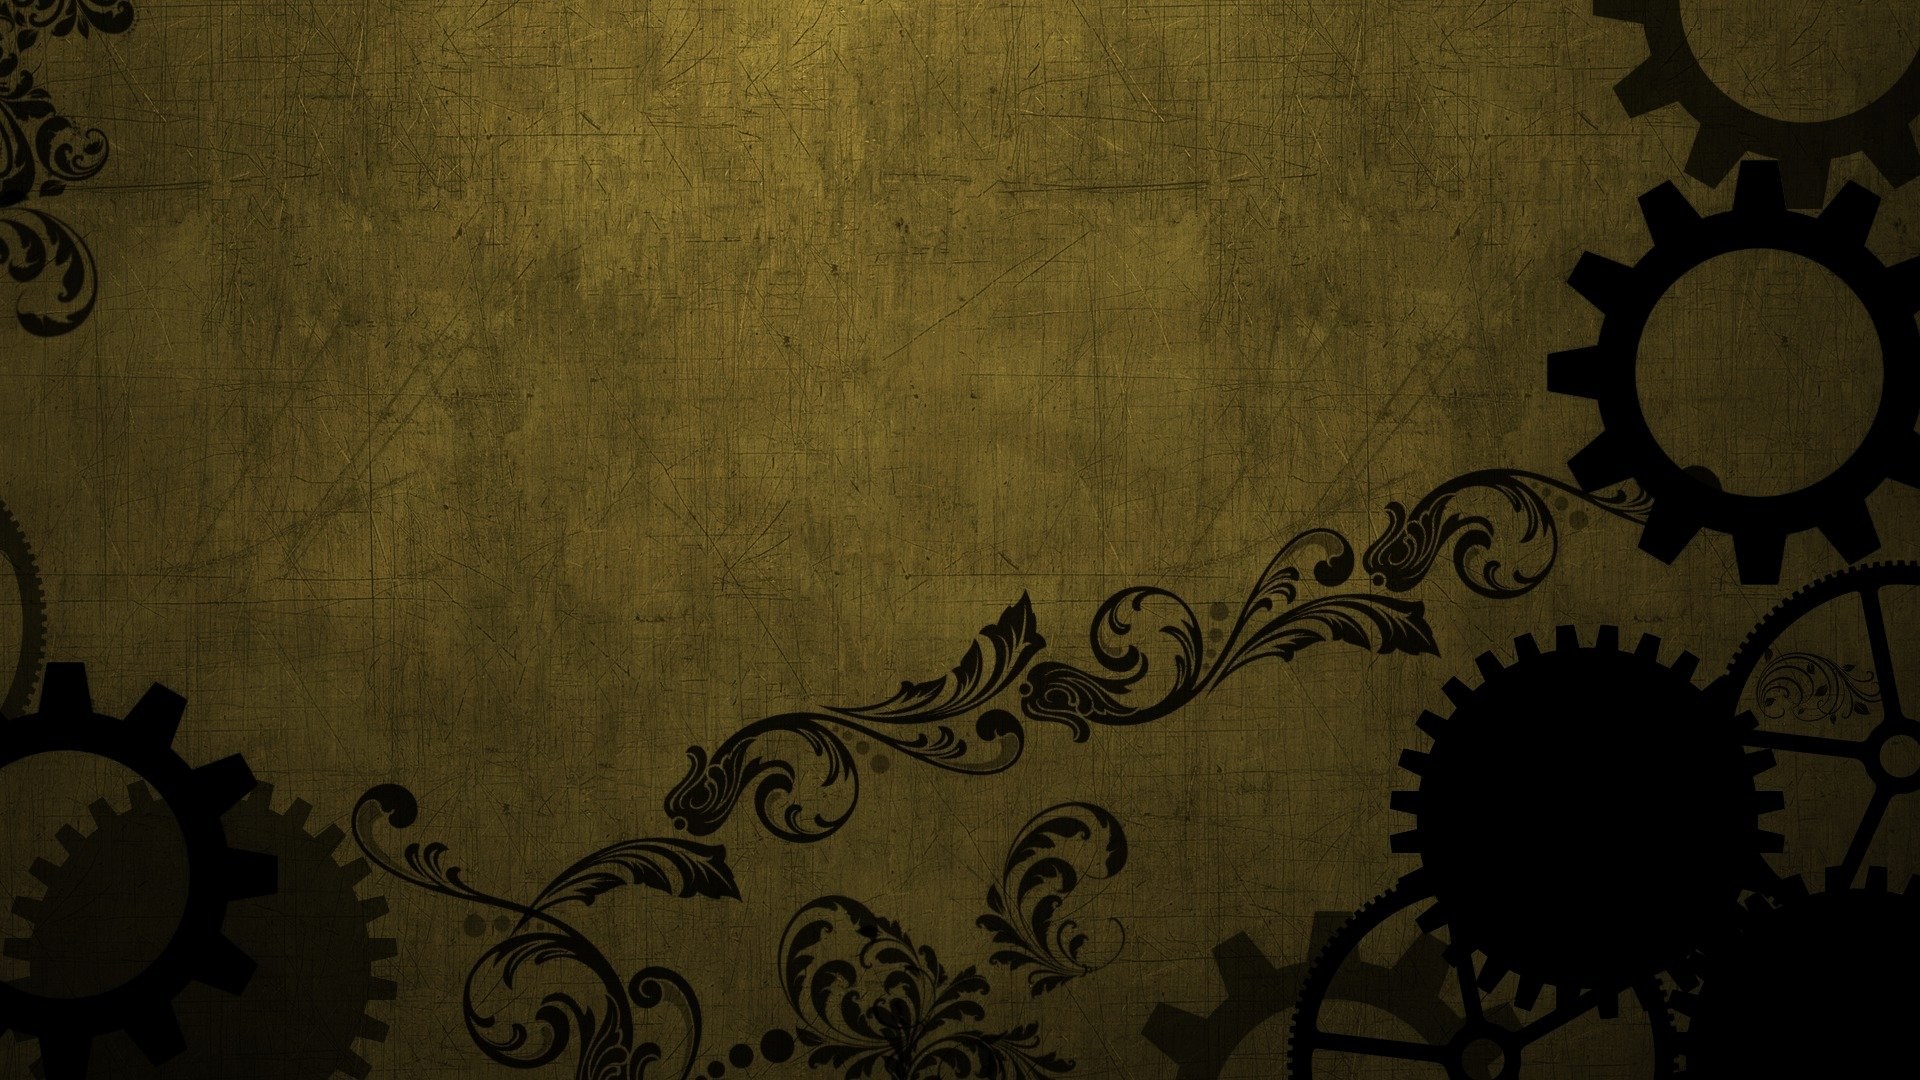 Wallpaper ventage vintage steampunk steampunk wallpapers style 1920x1080